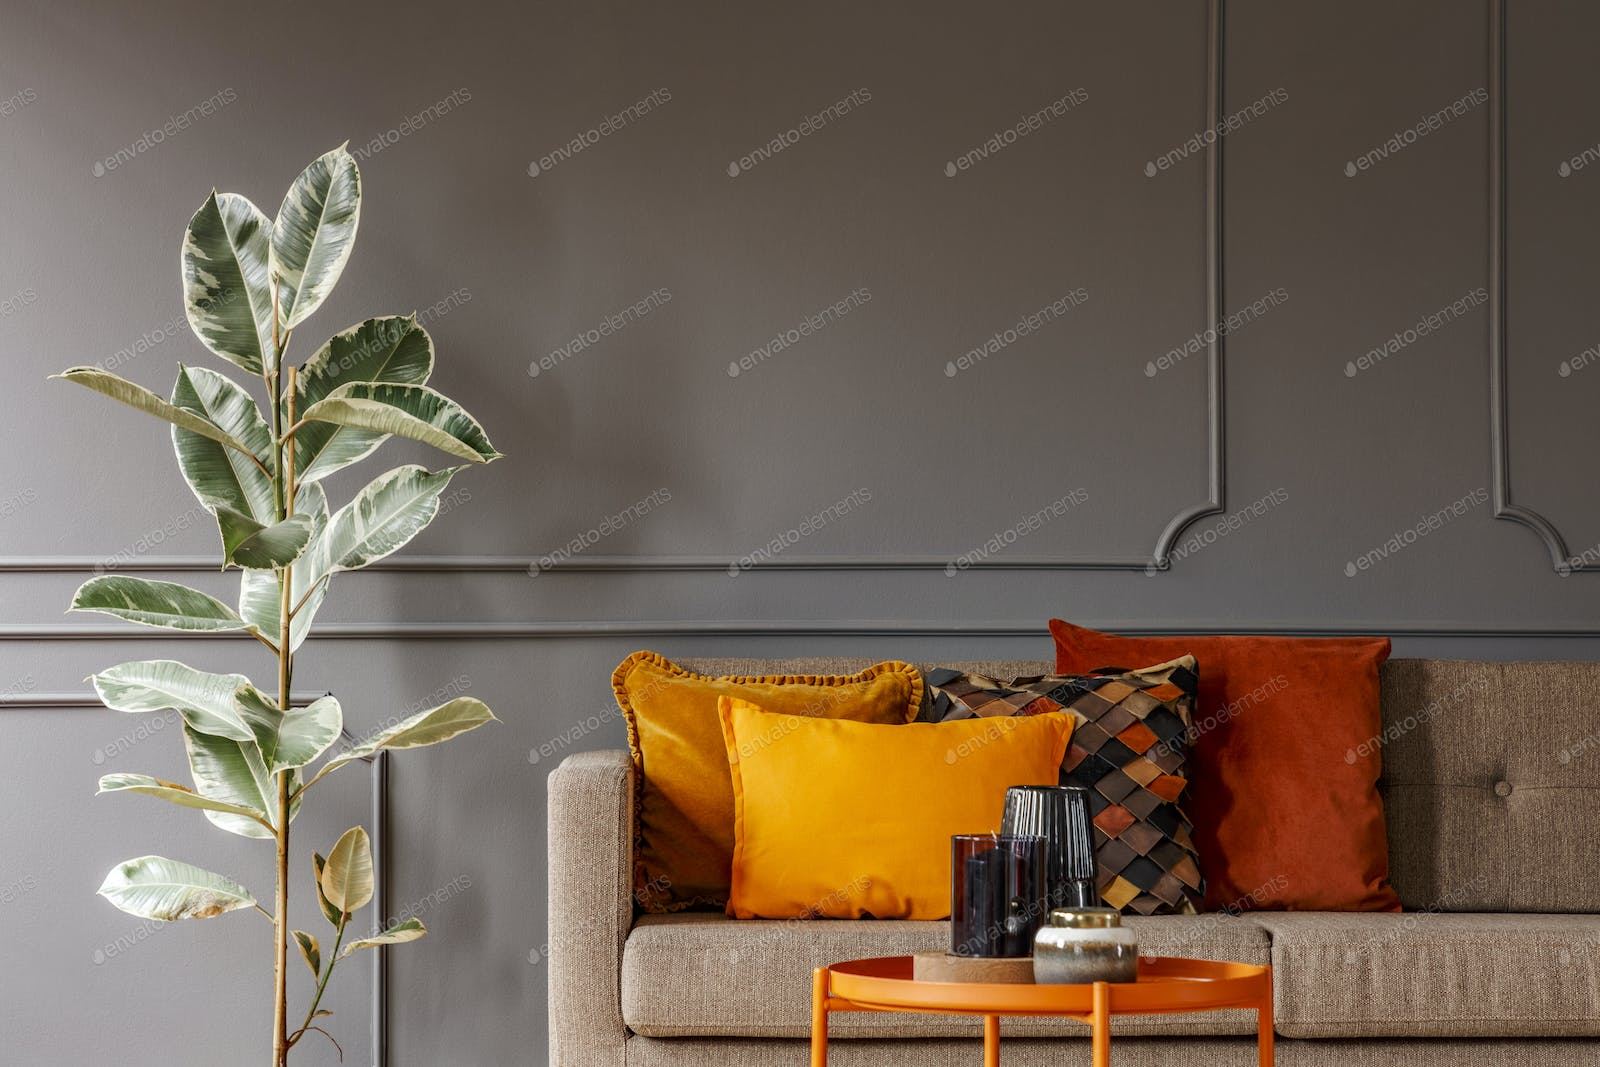 Ficus next to brown sofa with orange pillows in grey living room photo by  bialasiewicz on Envato Elements